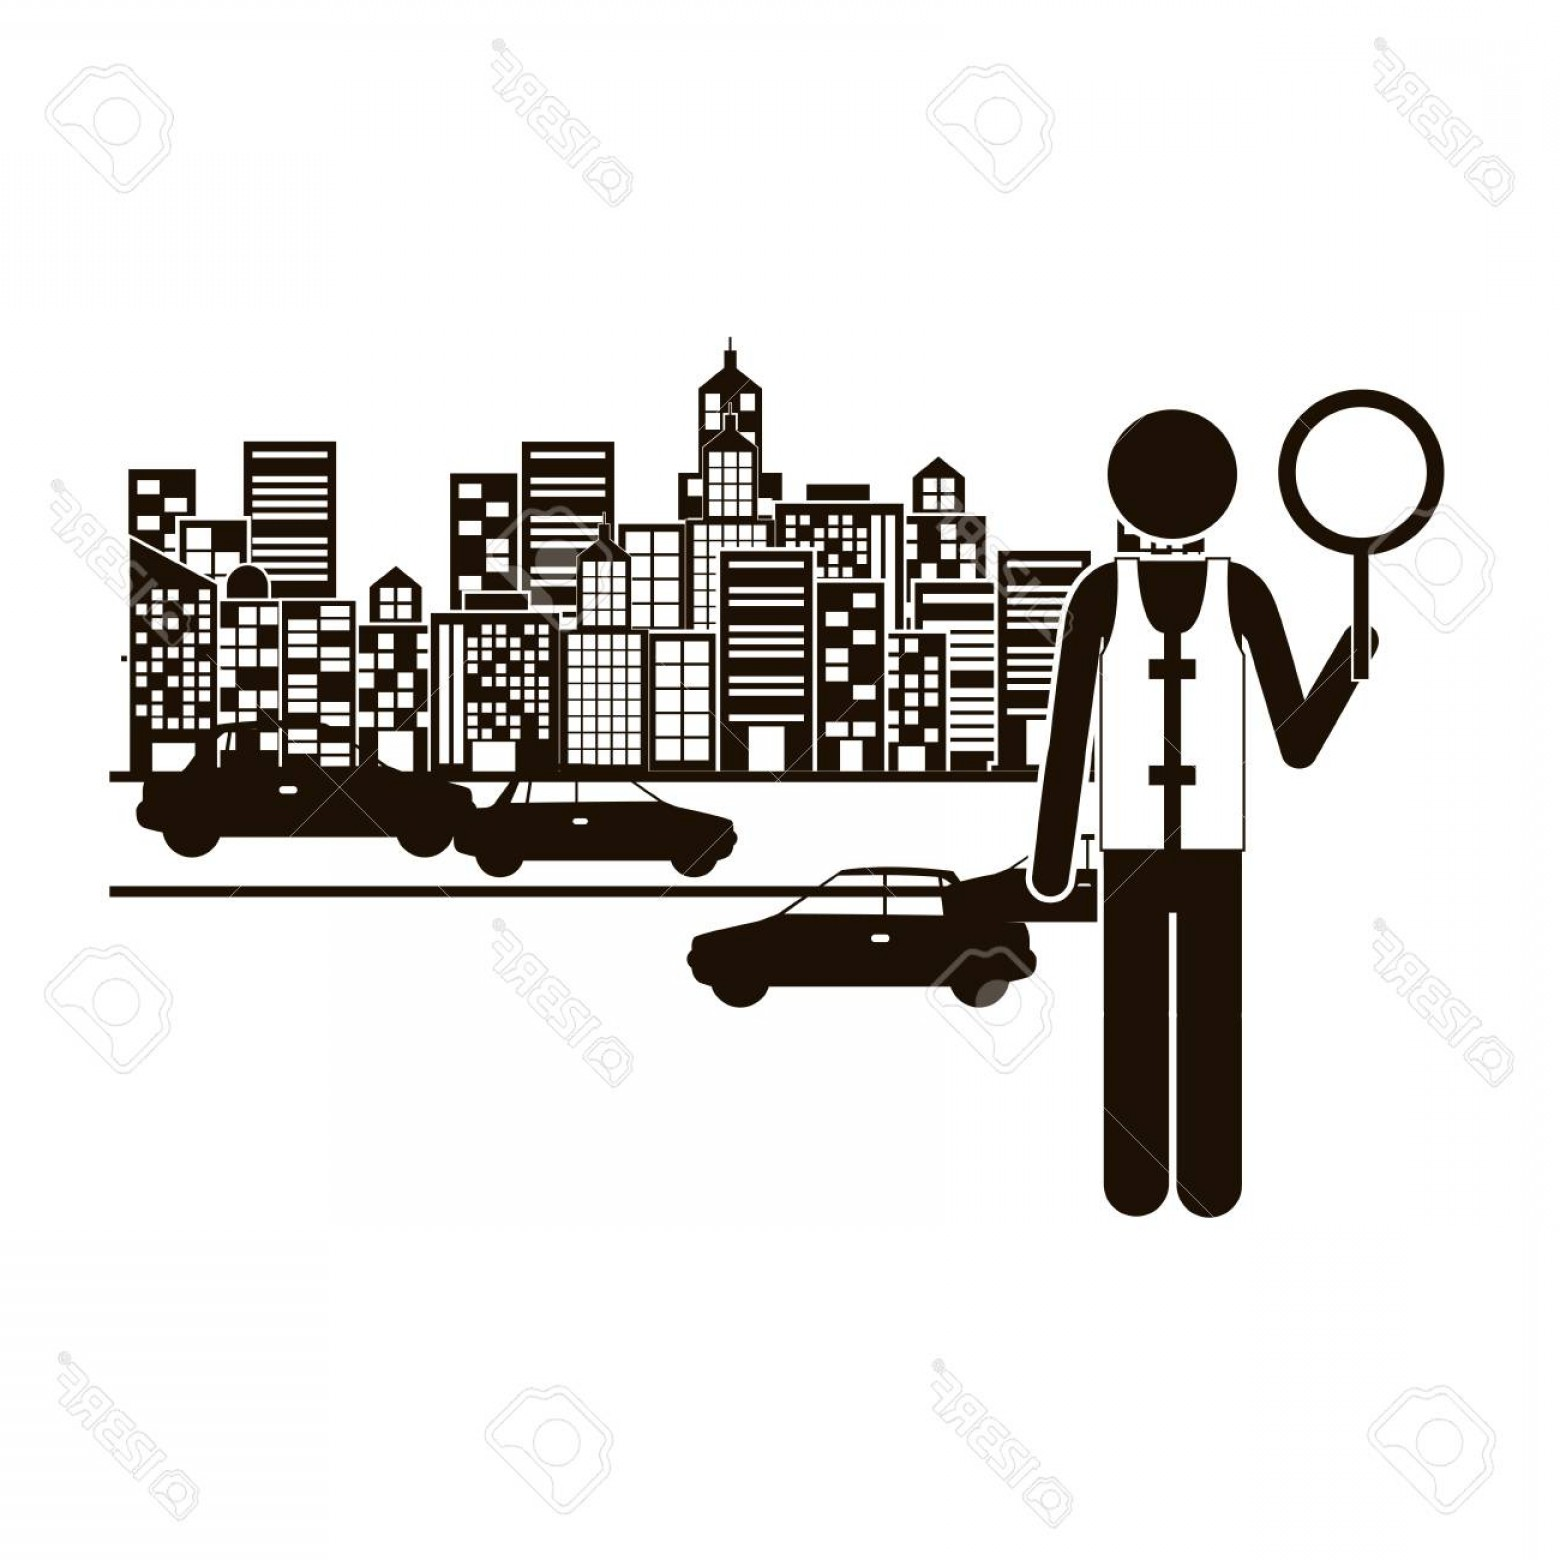 Cars Skyline Vector: Photostock Vector Black Silhouette Traffic Guard In City With Cars Vector Illustration